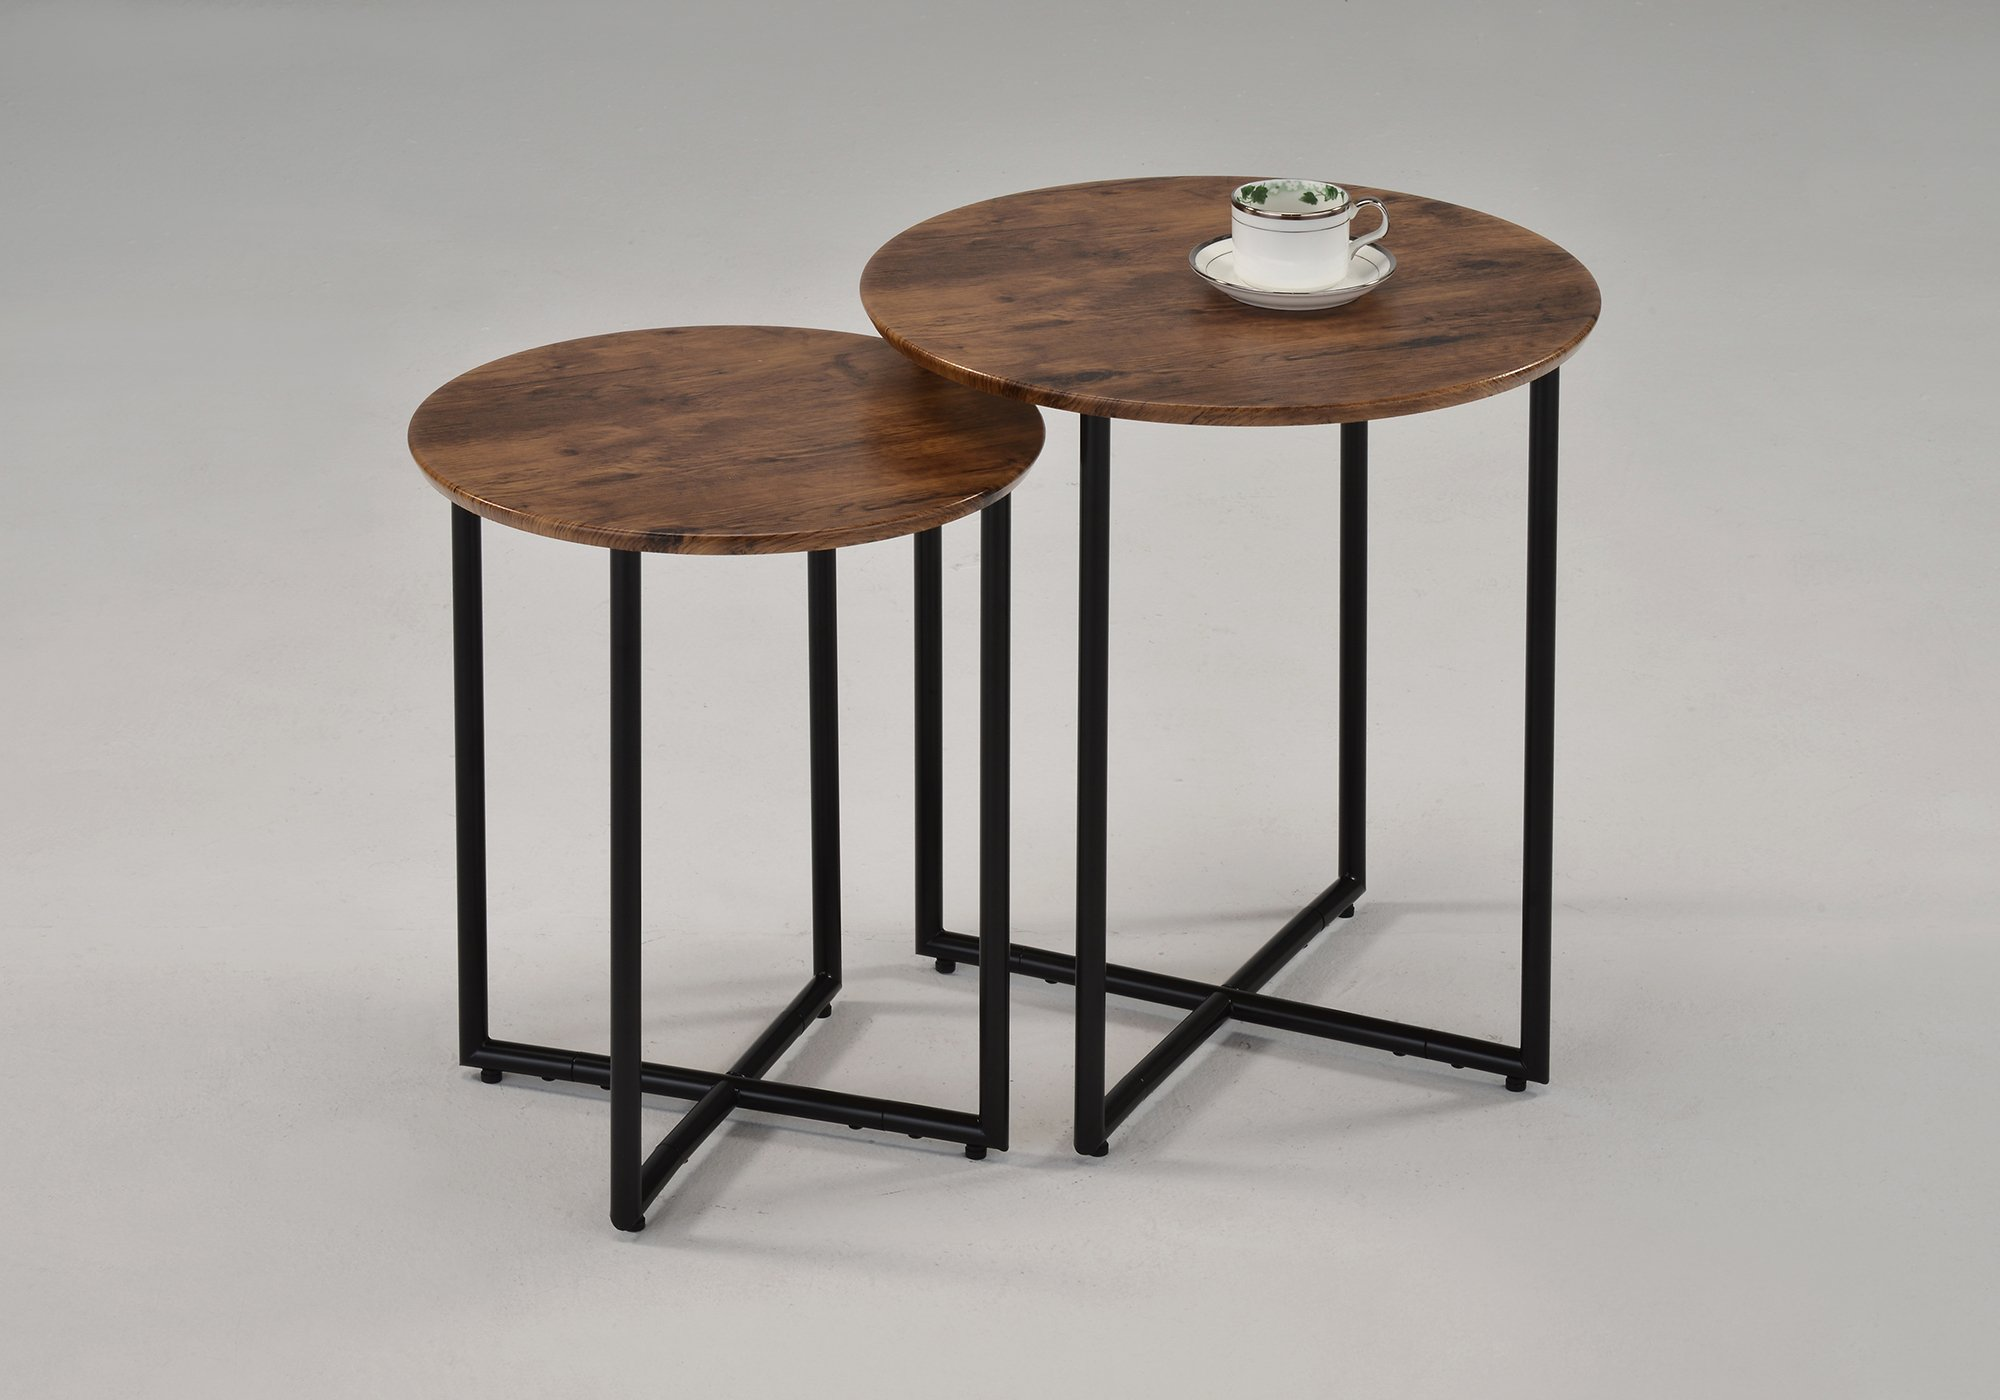 Set of 2 Walnut Finish Round Nesting Tables Side End Table